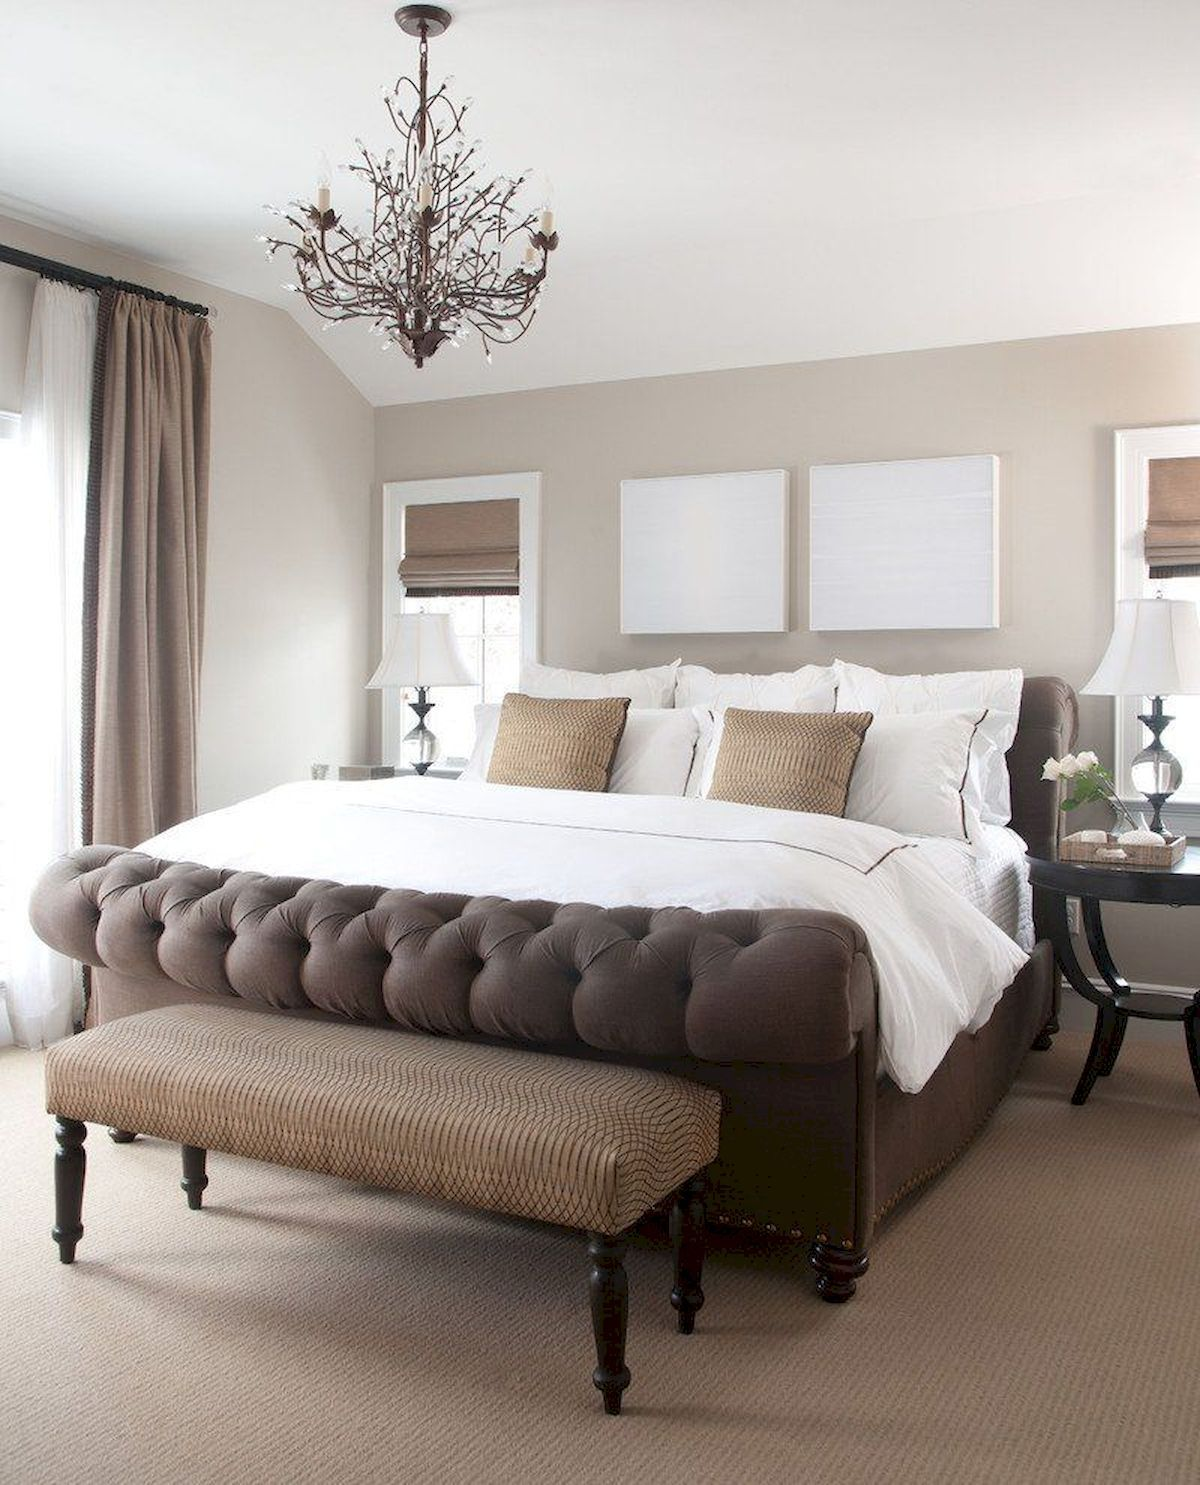 80+ WOW Completely Redecorate Bedroom Decorating Ideas